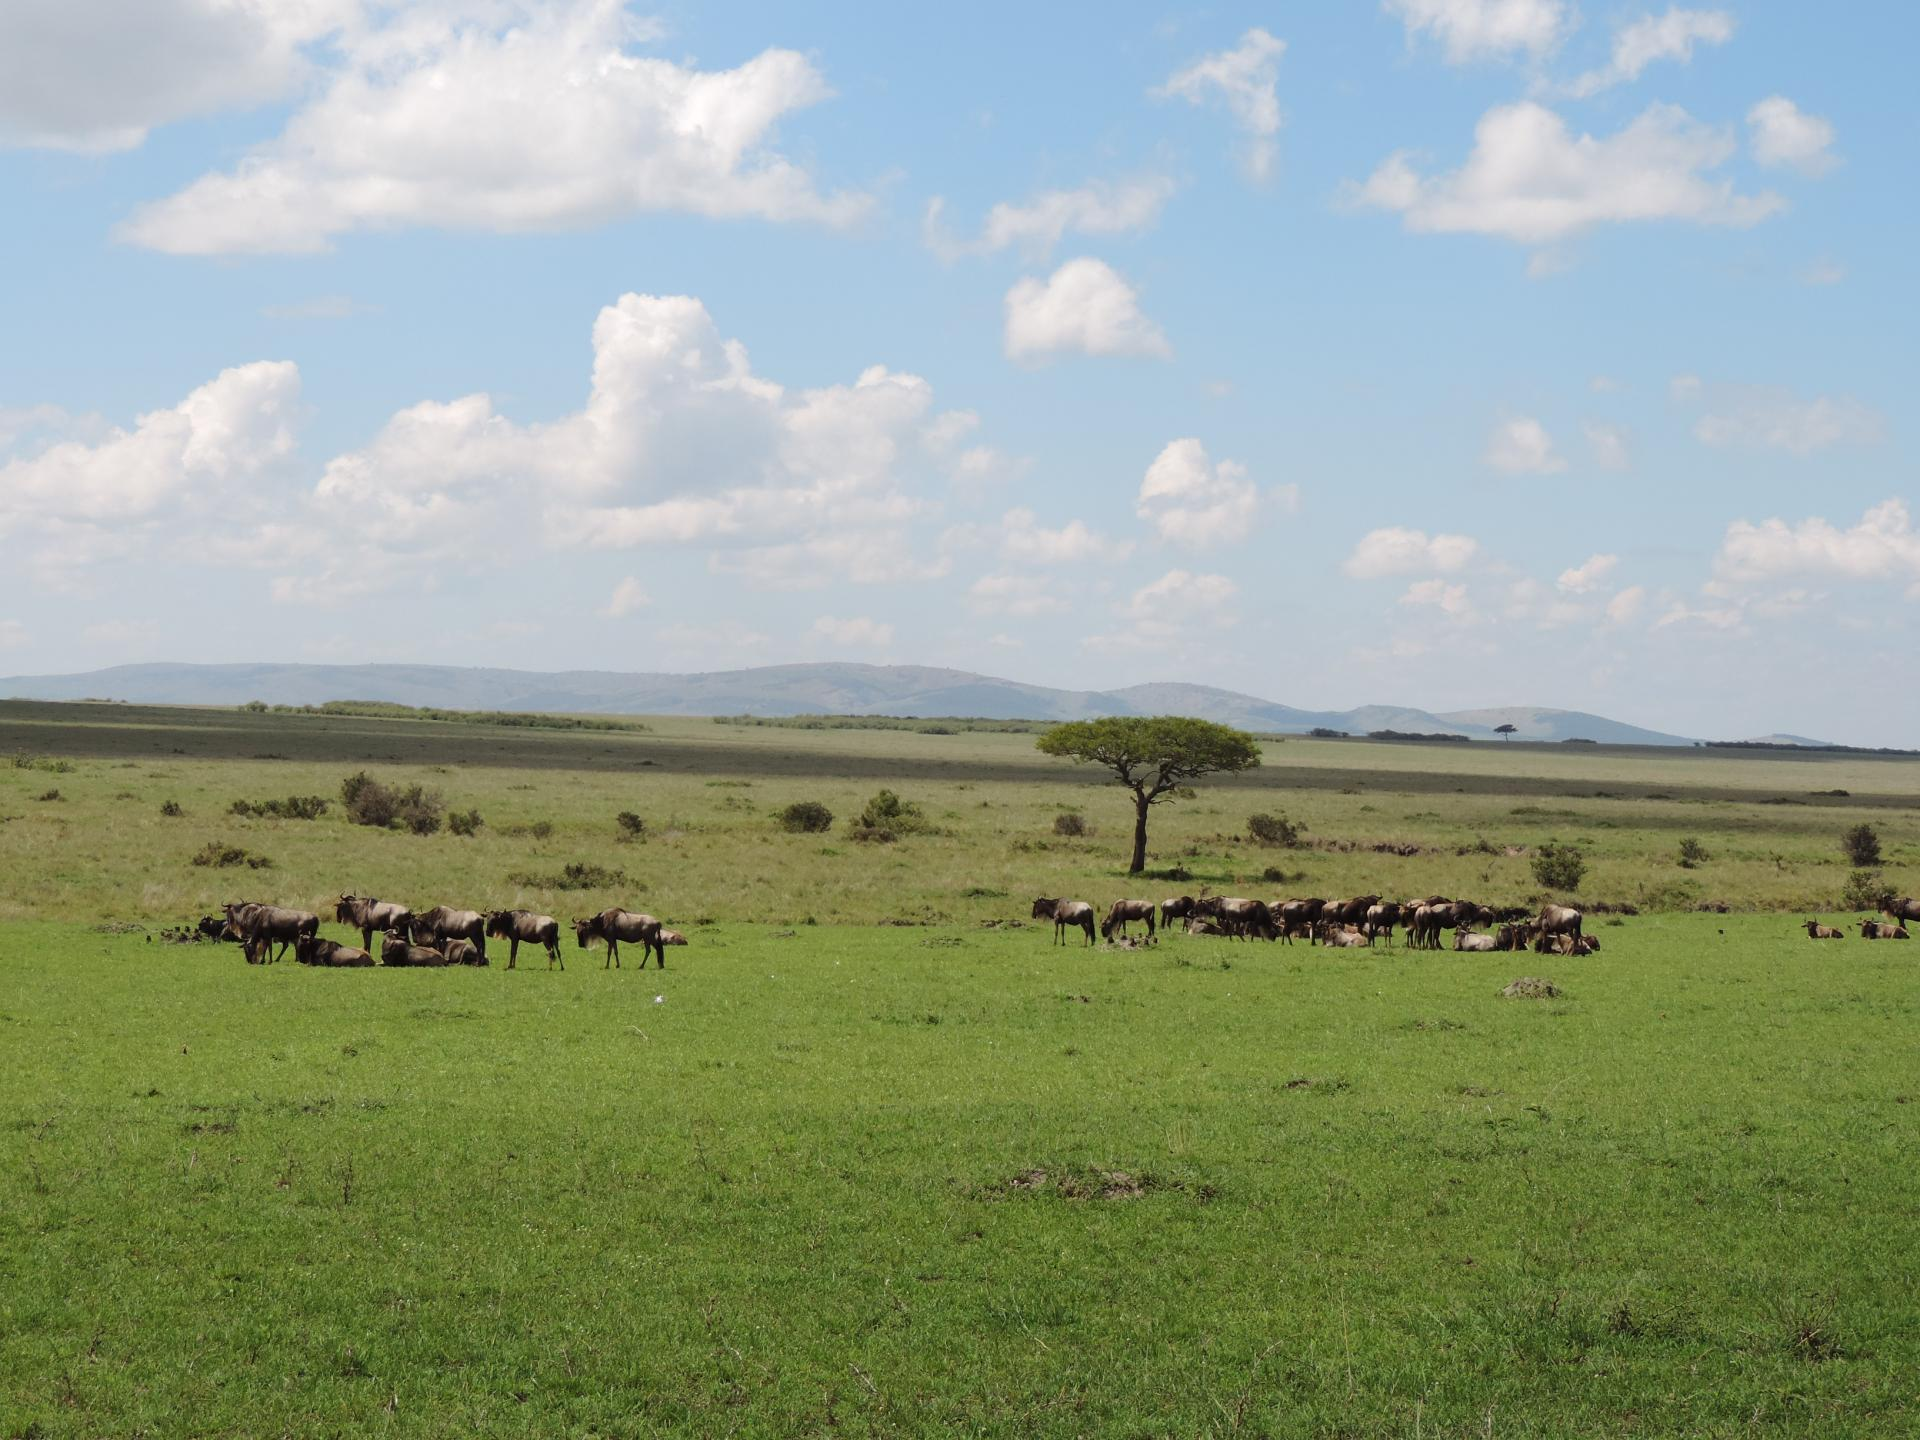 Wildebeest & Sceanic Views of Masai Mara Kenya Adventure Budget Safari